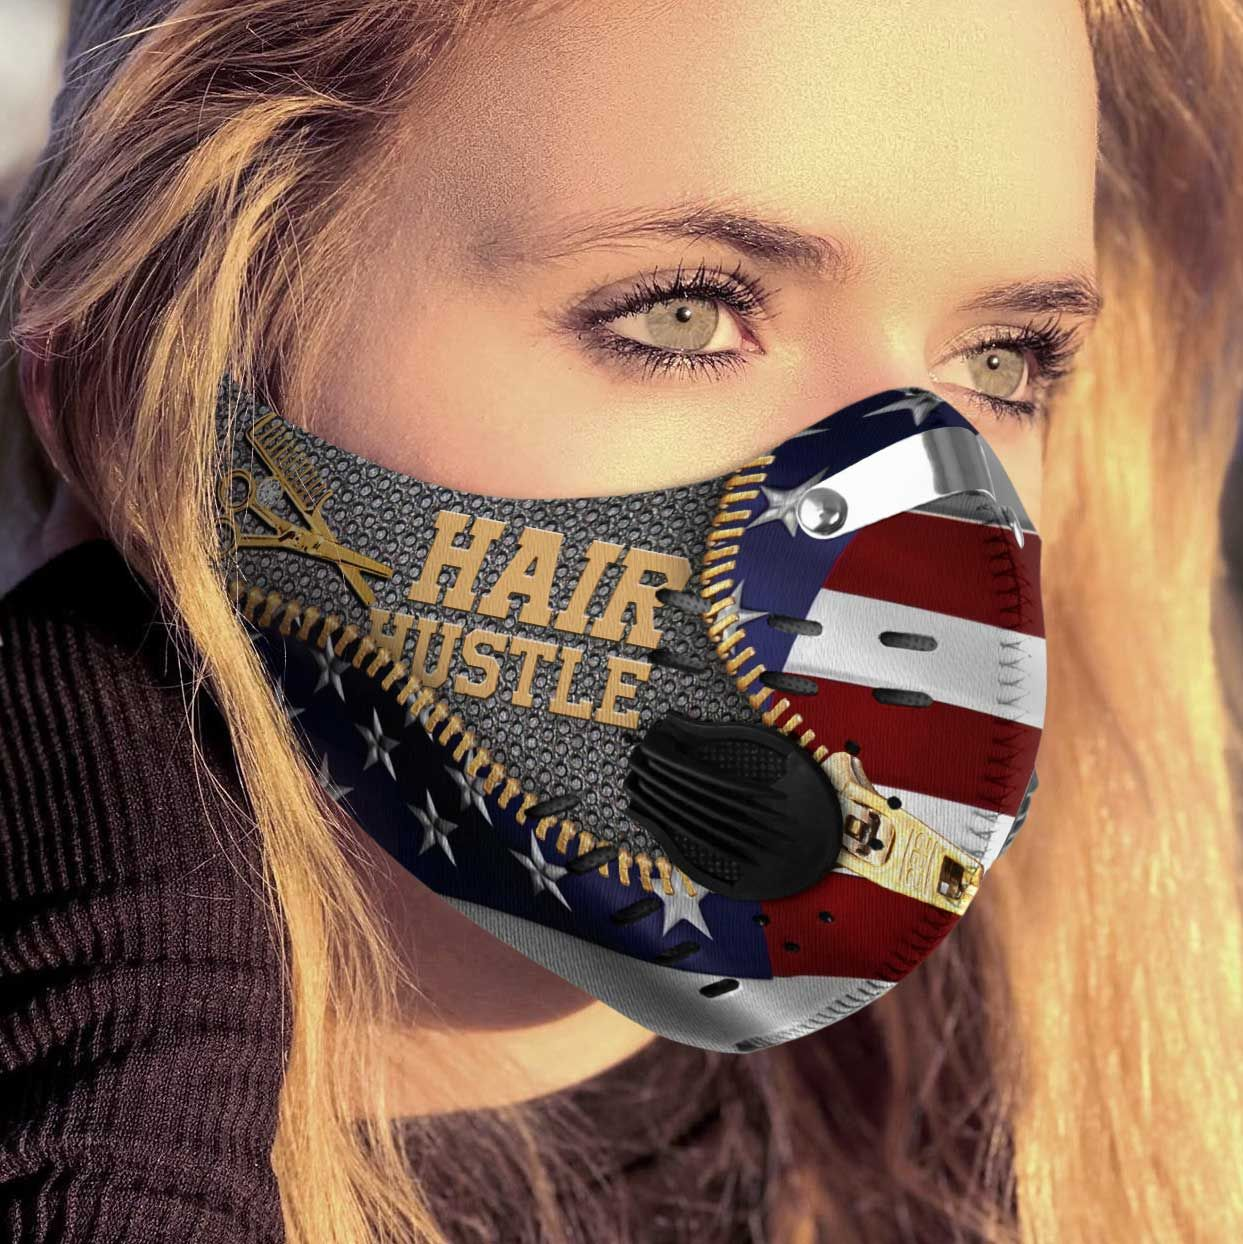 Hairstylist hair hustle american flag carbon pm 2,5 face mask 1